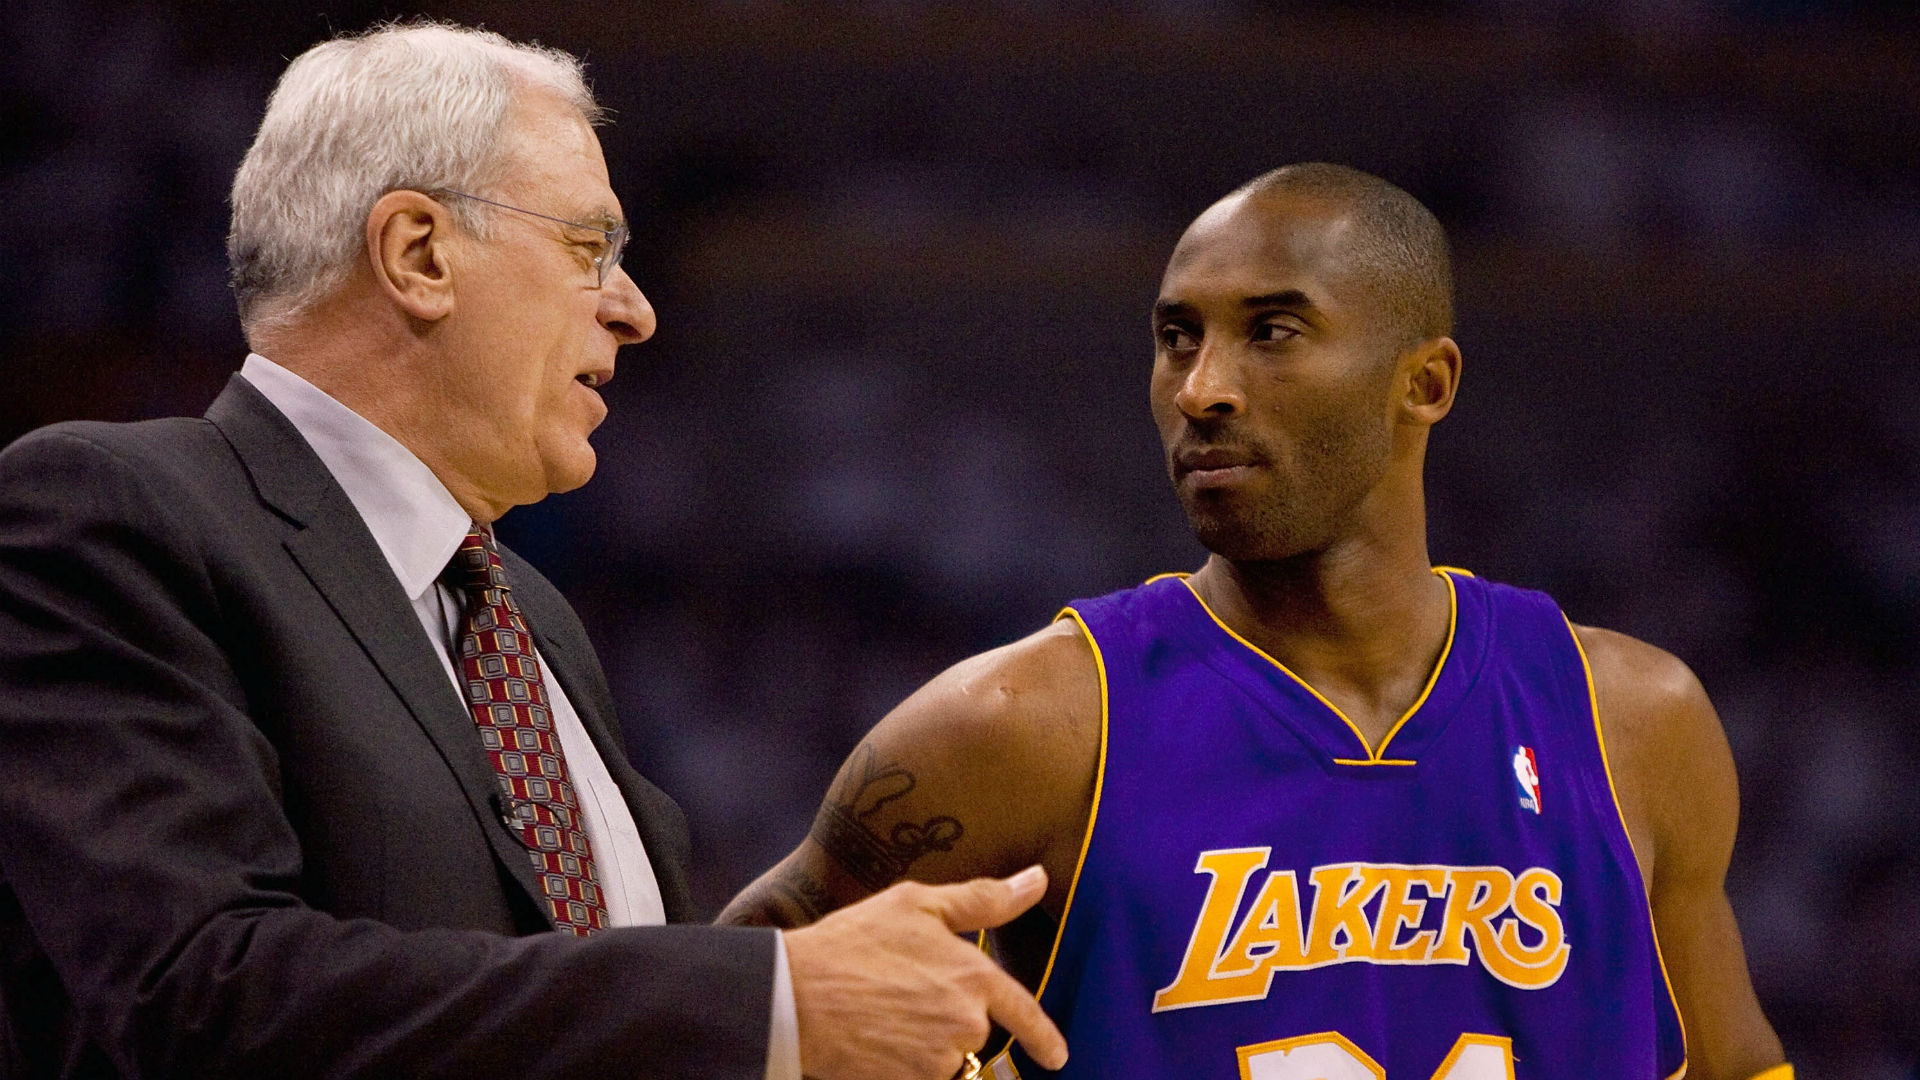 Phil Jackson on coaching Kobe Bryant: 'Quite often I could feel his hatred'